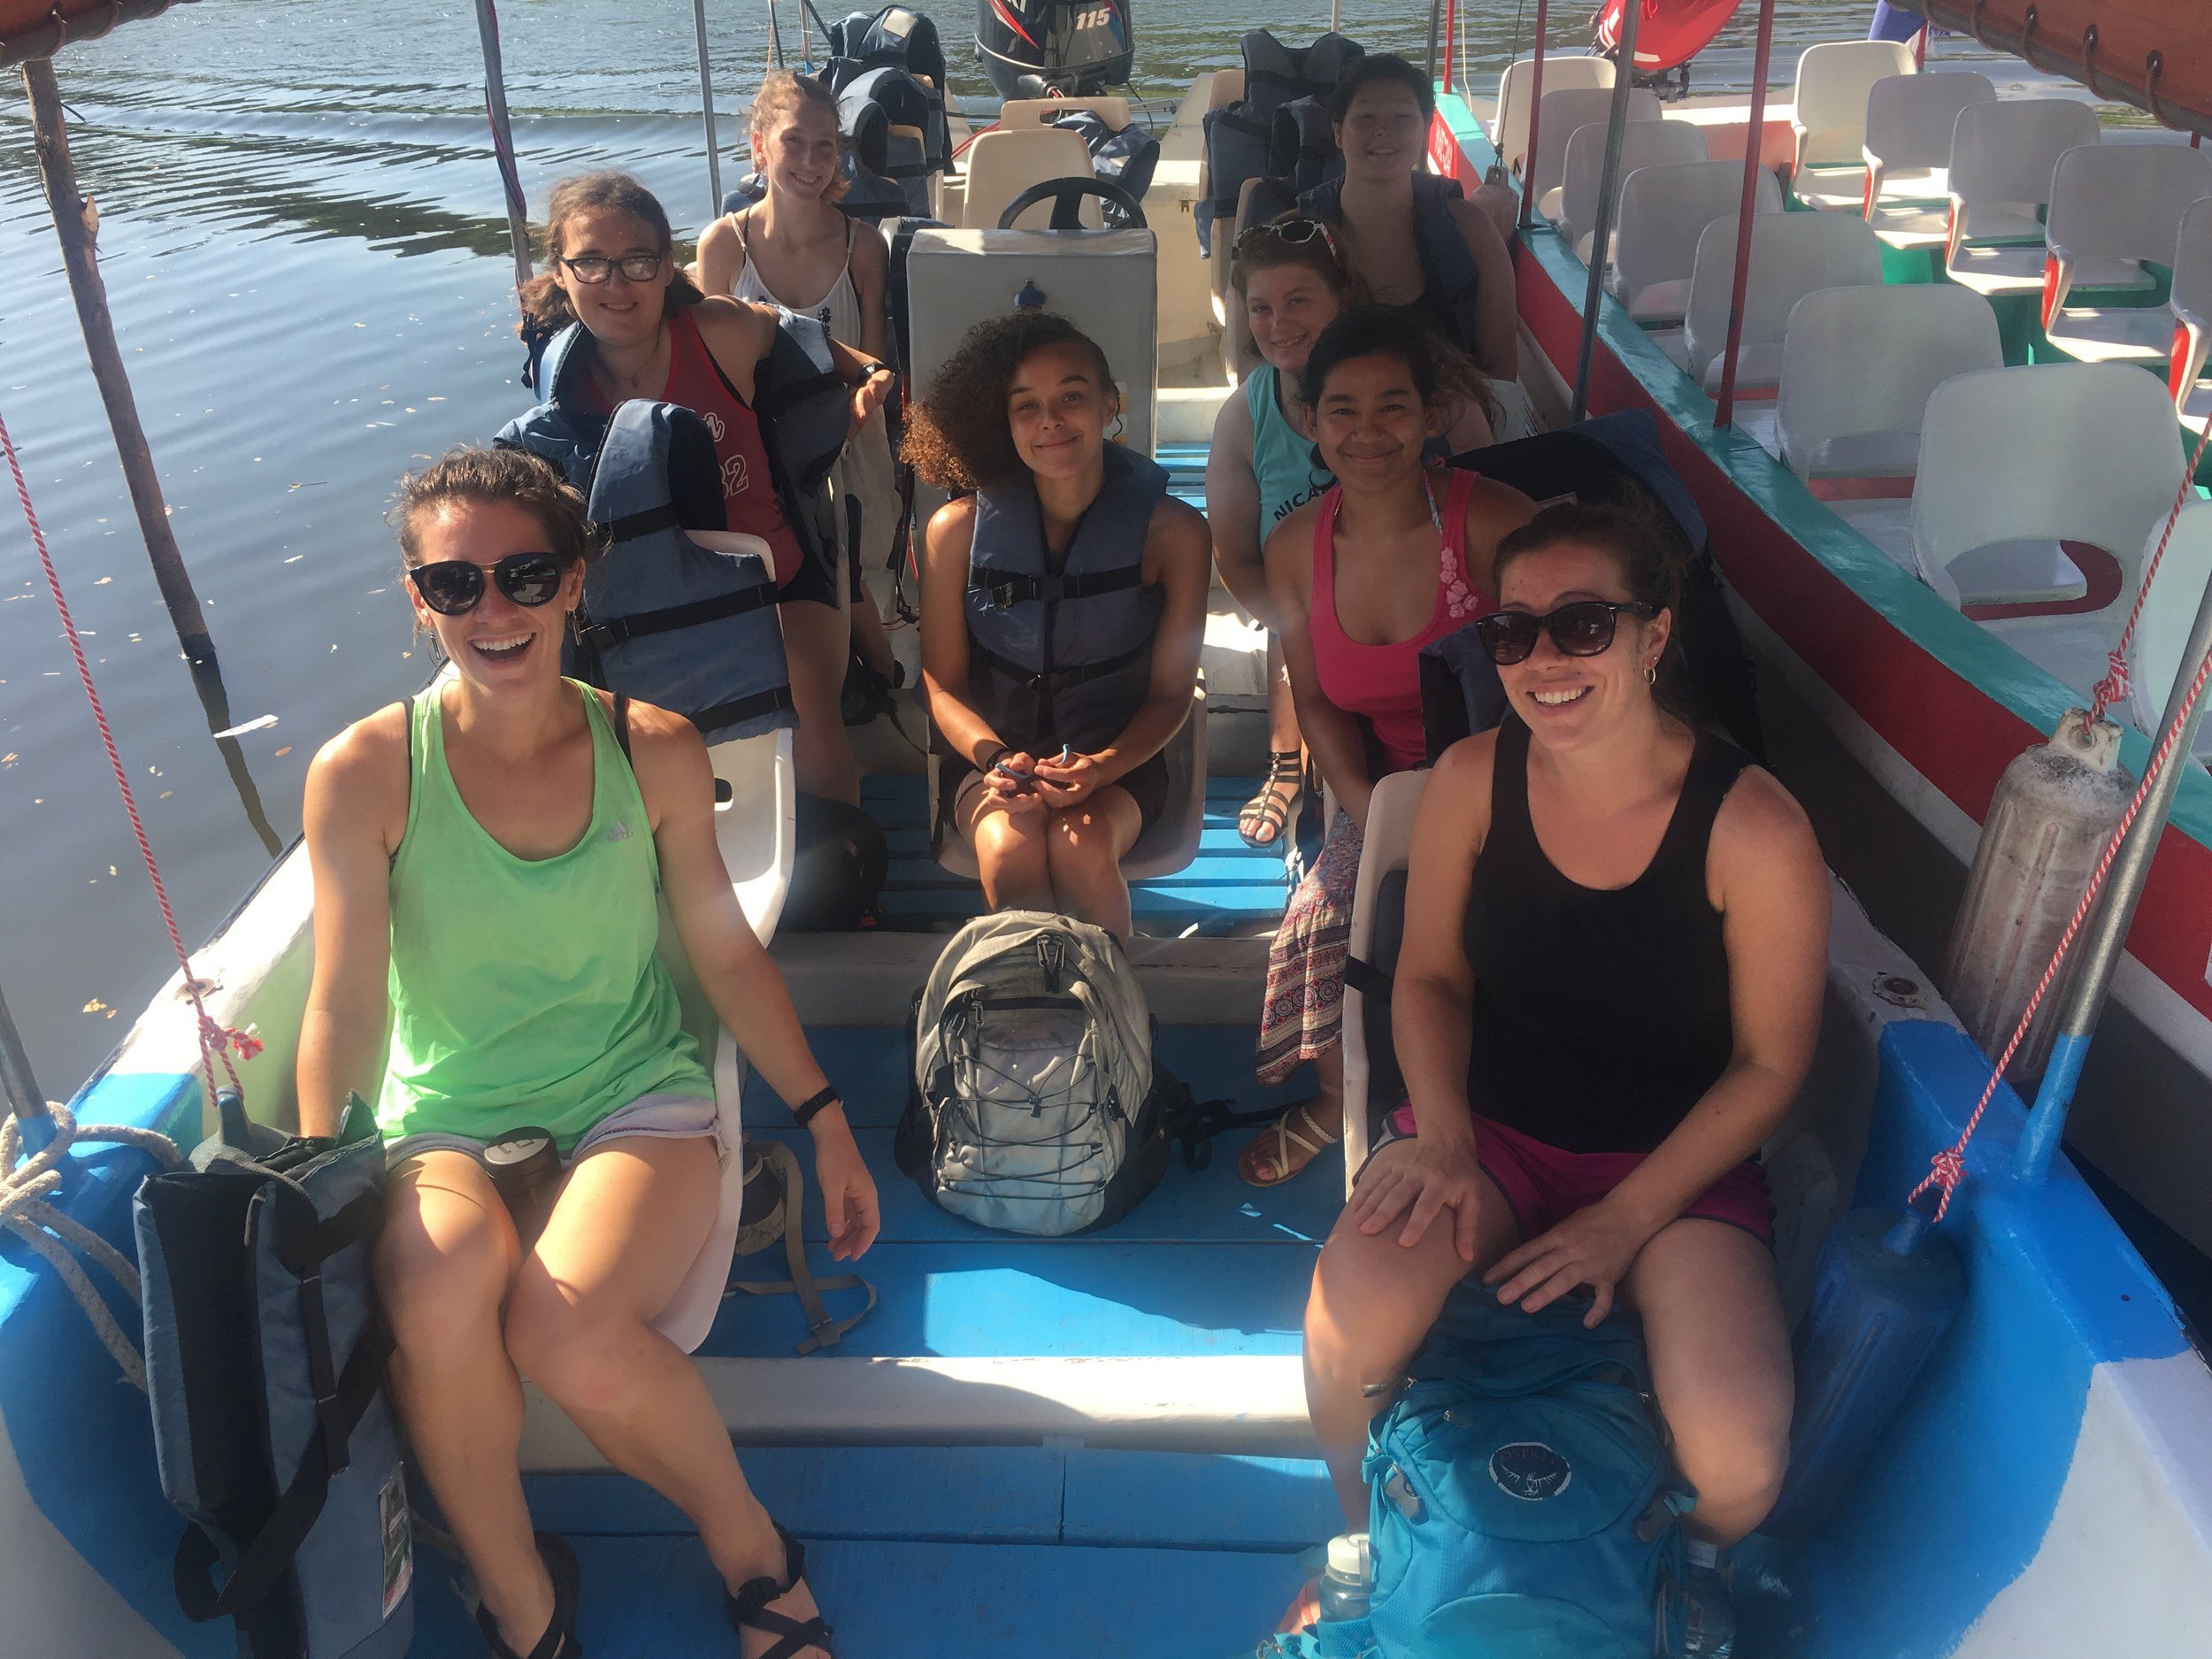 Heading out for a boat tour of Las Isletas (little islands) in Granada.